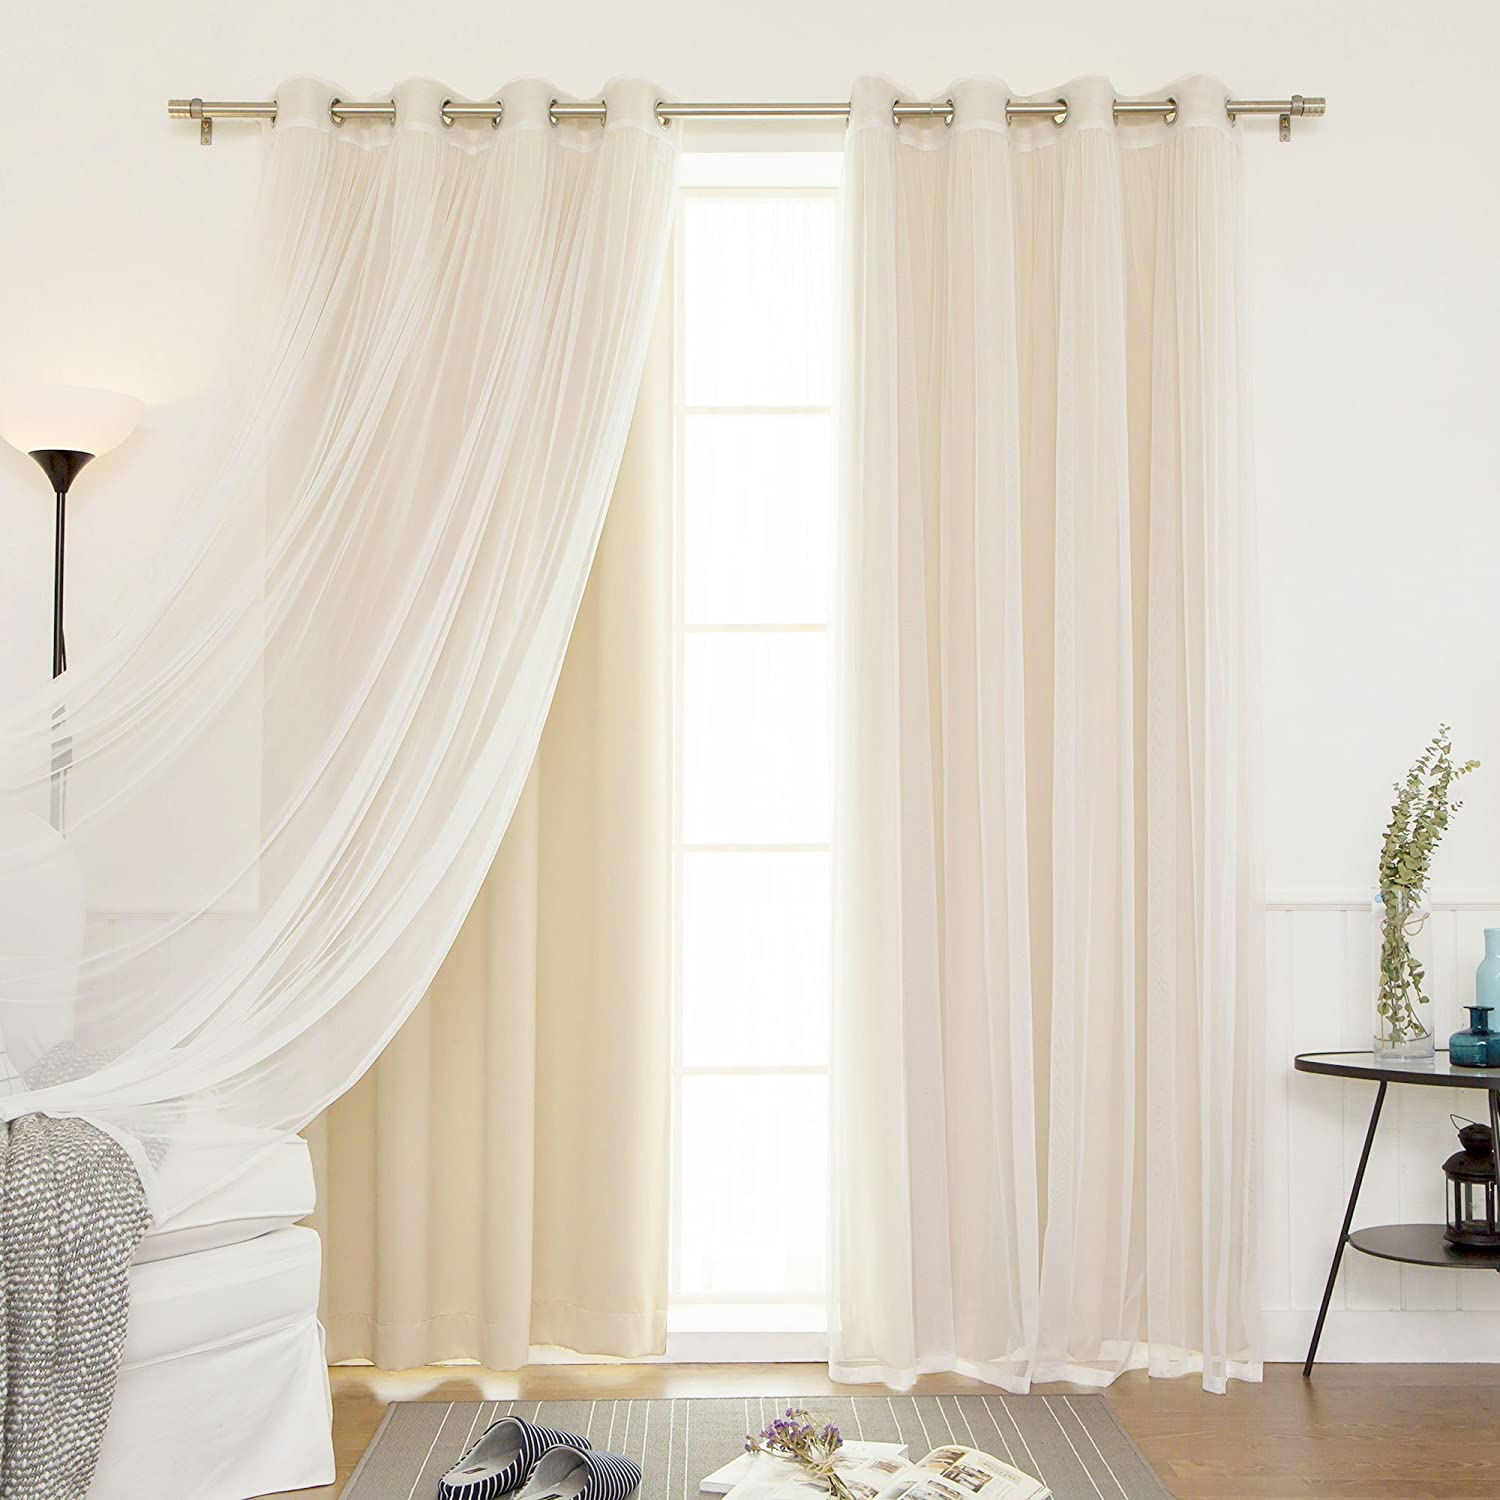 Best Home Fashion uMIXm Mix and Match Tulle Sheer Lace & Solid Blackout 4 Piece Curtain Set – Stainless Steel Nickel Grommet Top (52